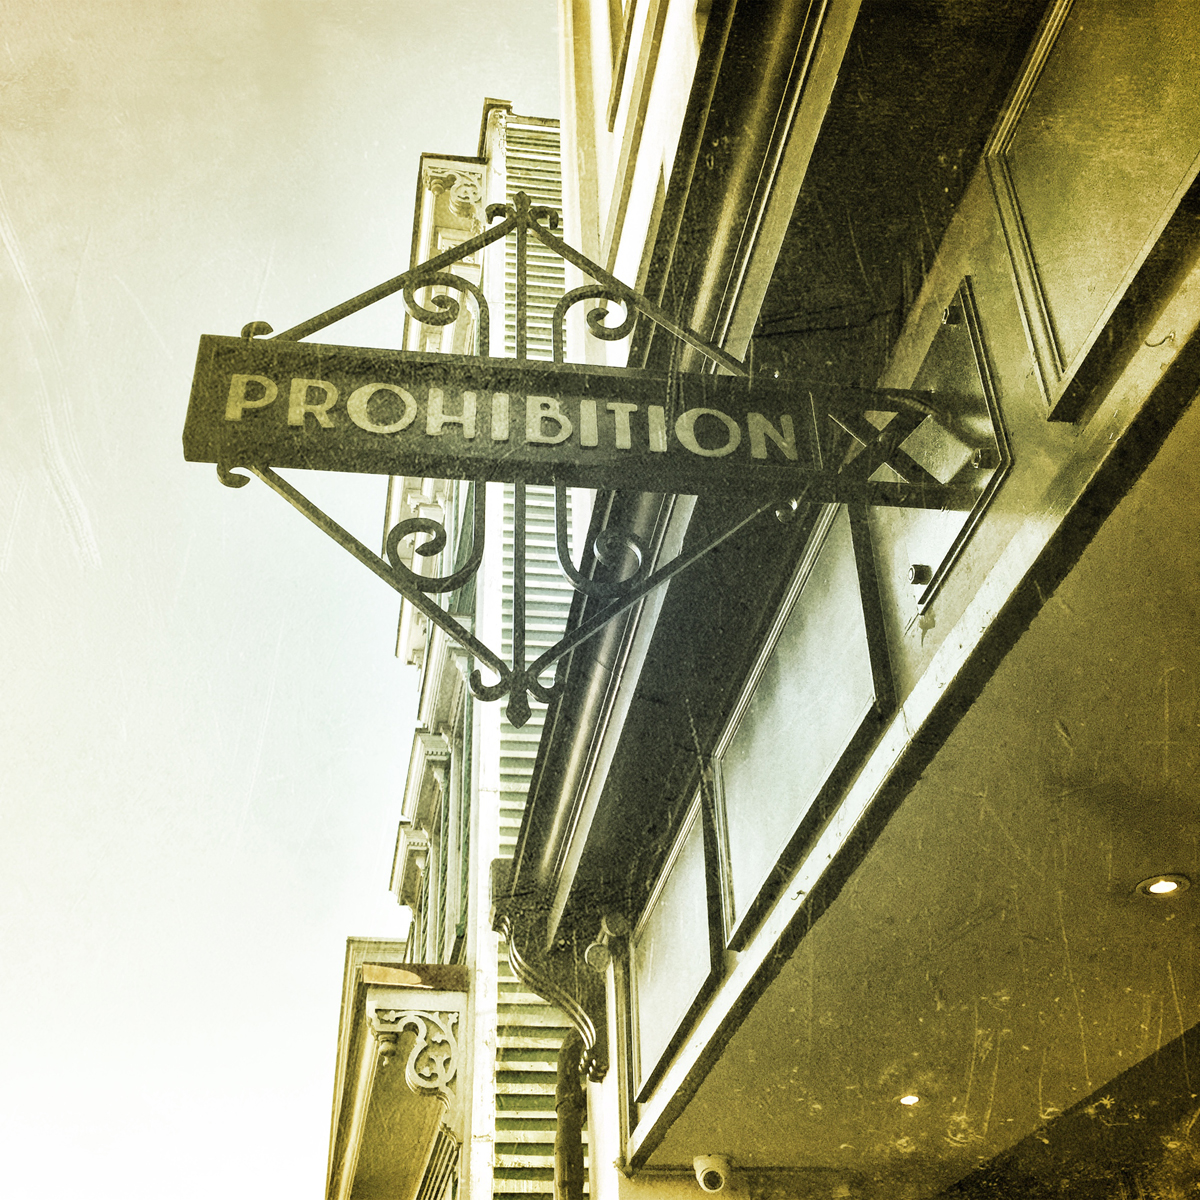 A few years ago I noticed a trend in the Charleston bar scene towards 20's era design and old fashion cocktail menus.  I heard someone actually refer to it as prohibition era design.  And then this place came along and actually called itself Prohibition.  Wondering how I created the look on this picture.  I used the Camera + grunge filter.